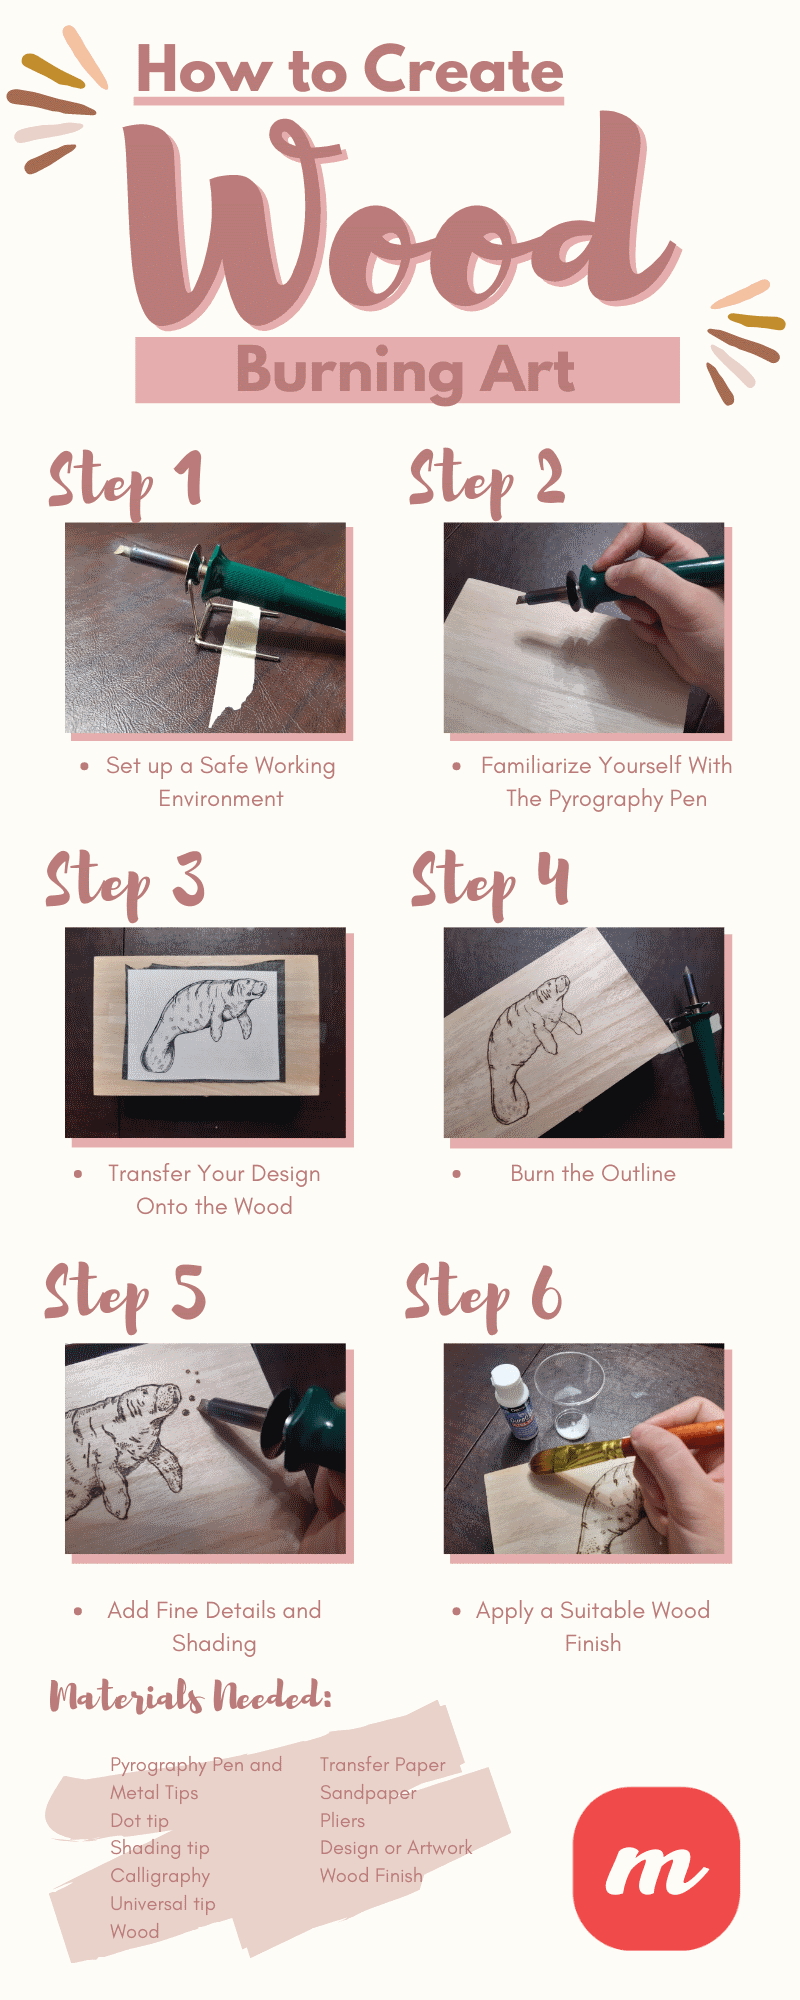 How to Create Wood Burning Art - infographic